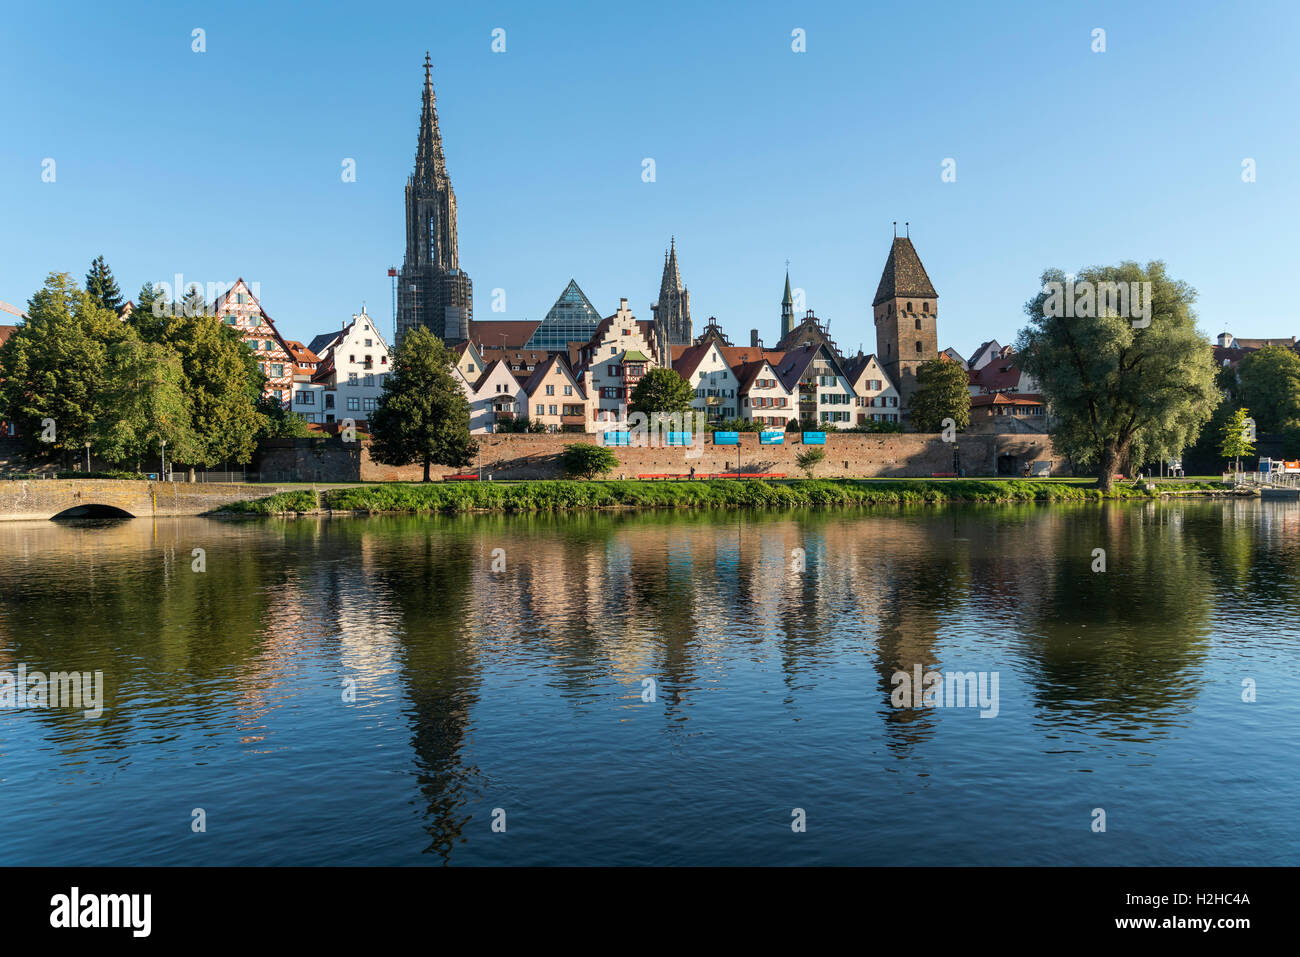 cityscape with danube river and the Ulm Minster, Ulm, Baden-Württemberg, Germany, Europe Stock Photo